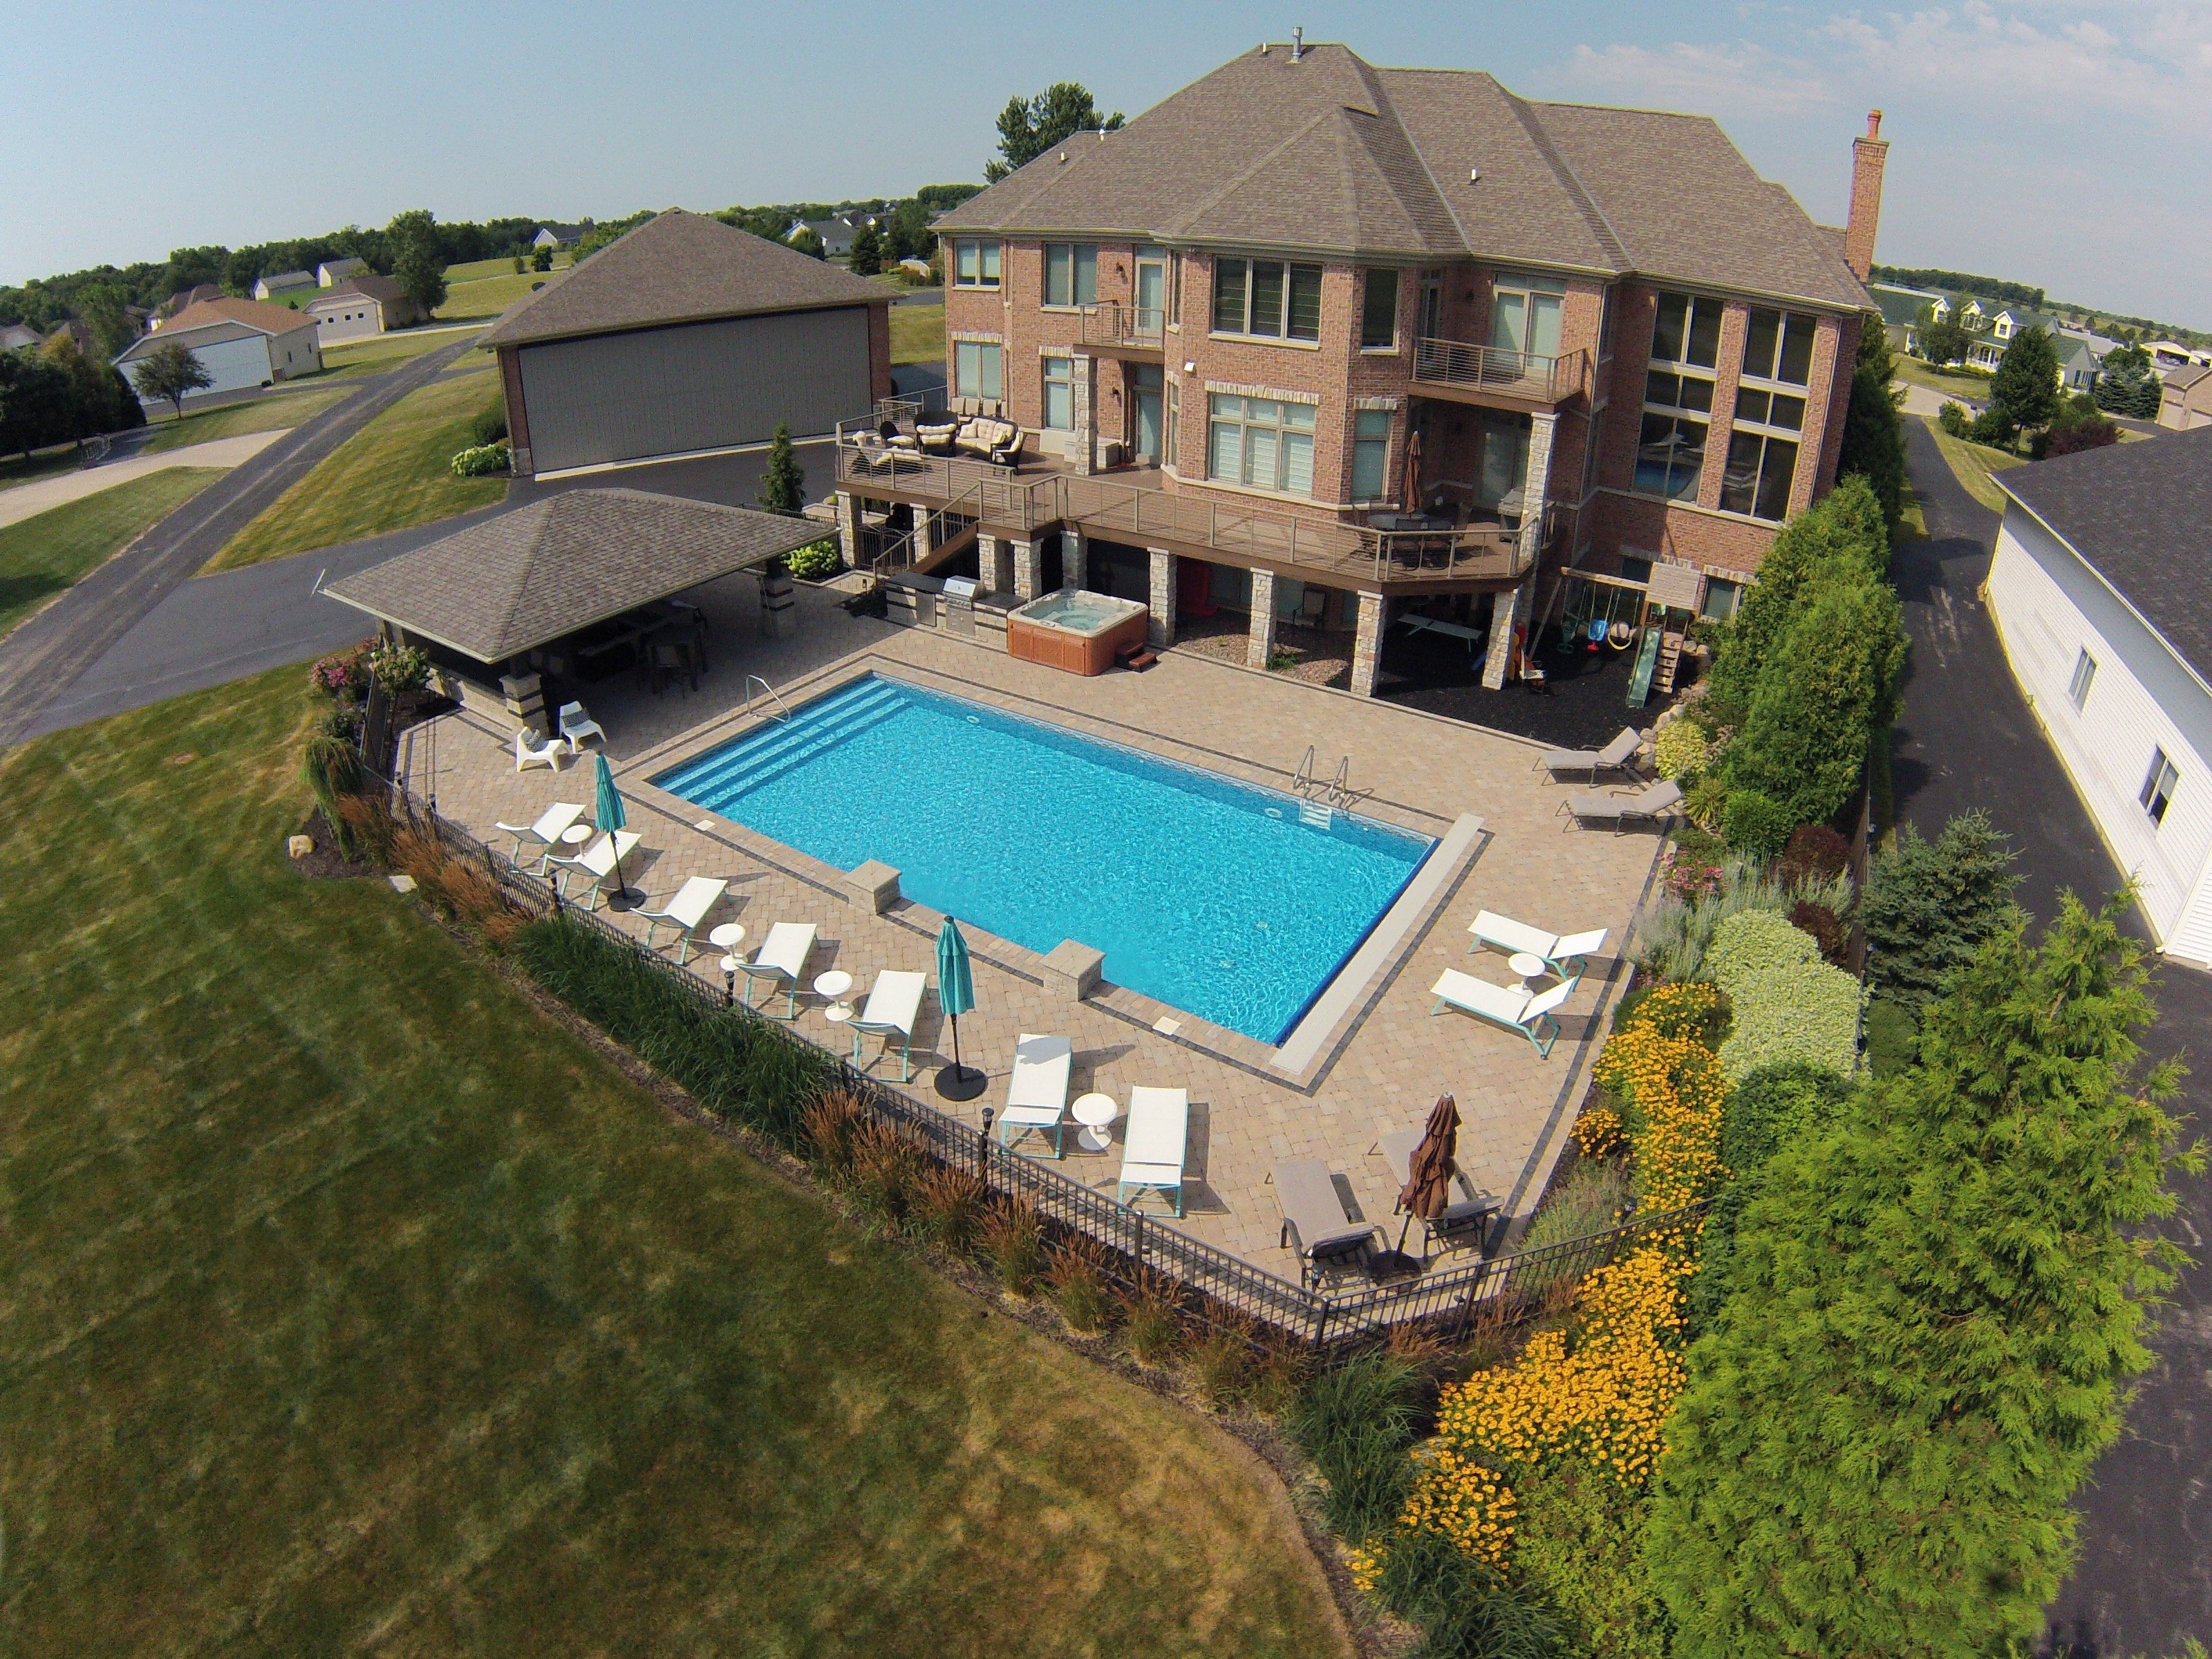 Rockford Pool Amp Spa Photo Gallery Loves Park Il